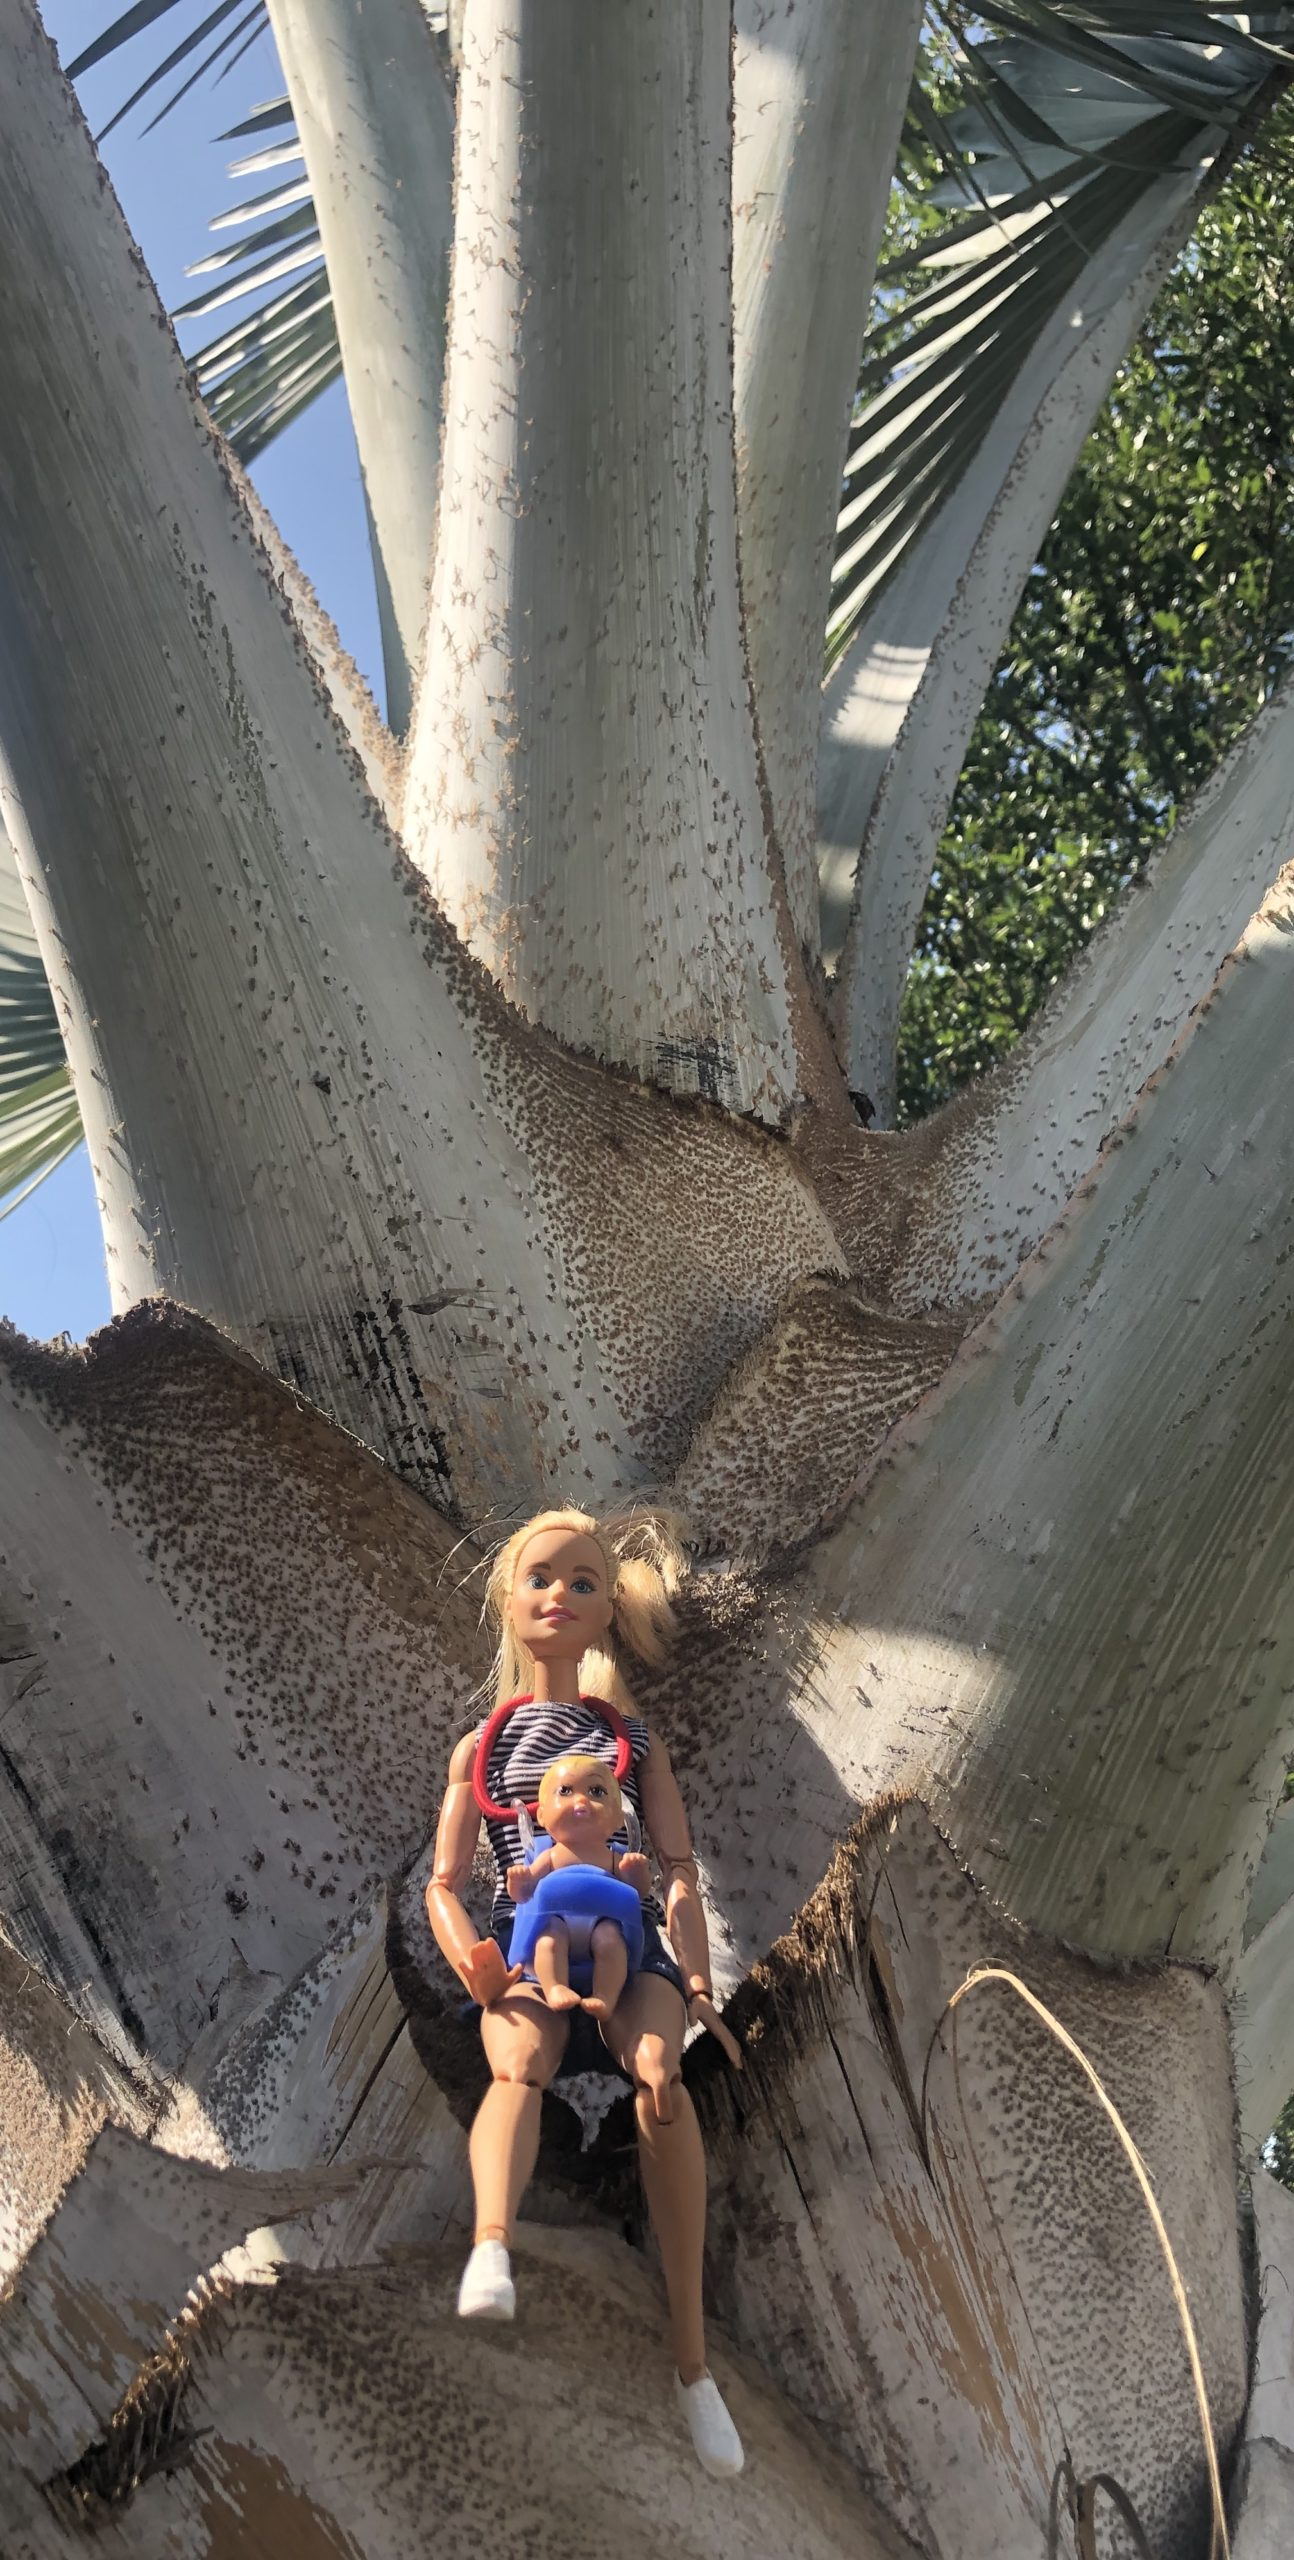 Barbie and a baby in a huge tree for the Barbie children's story.